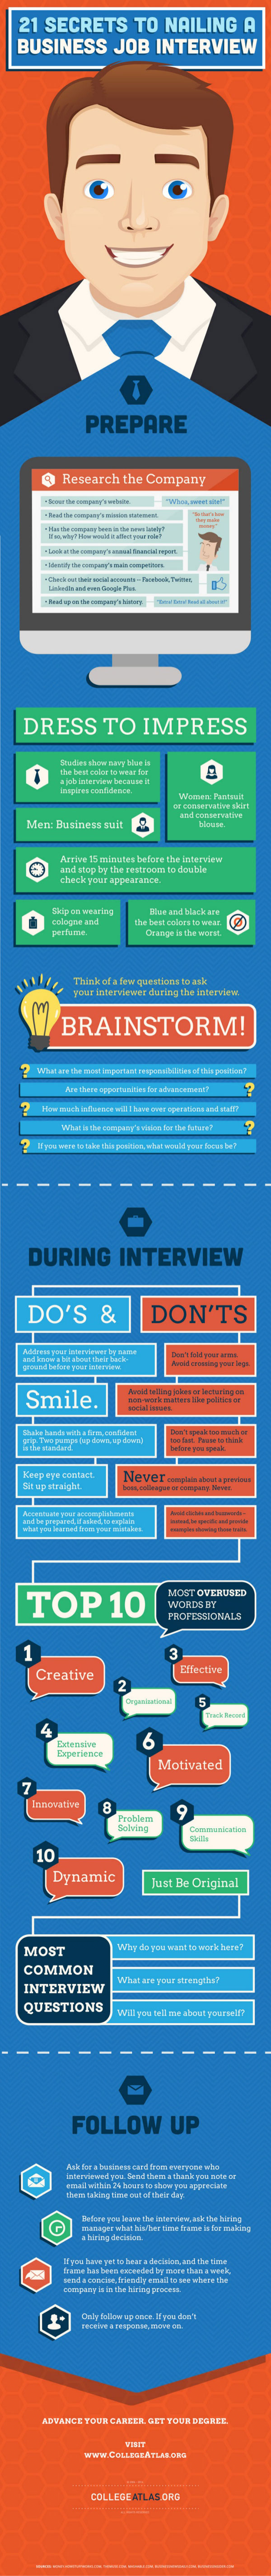 21 Secrets to Nailing a Job Interview [Infographic]